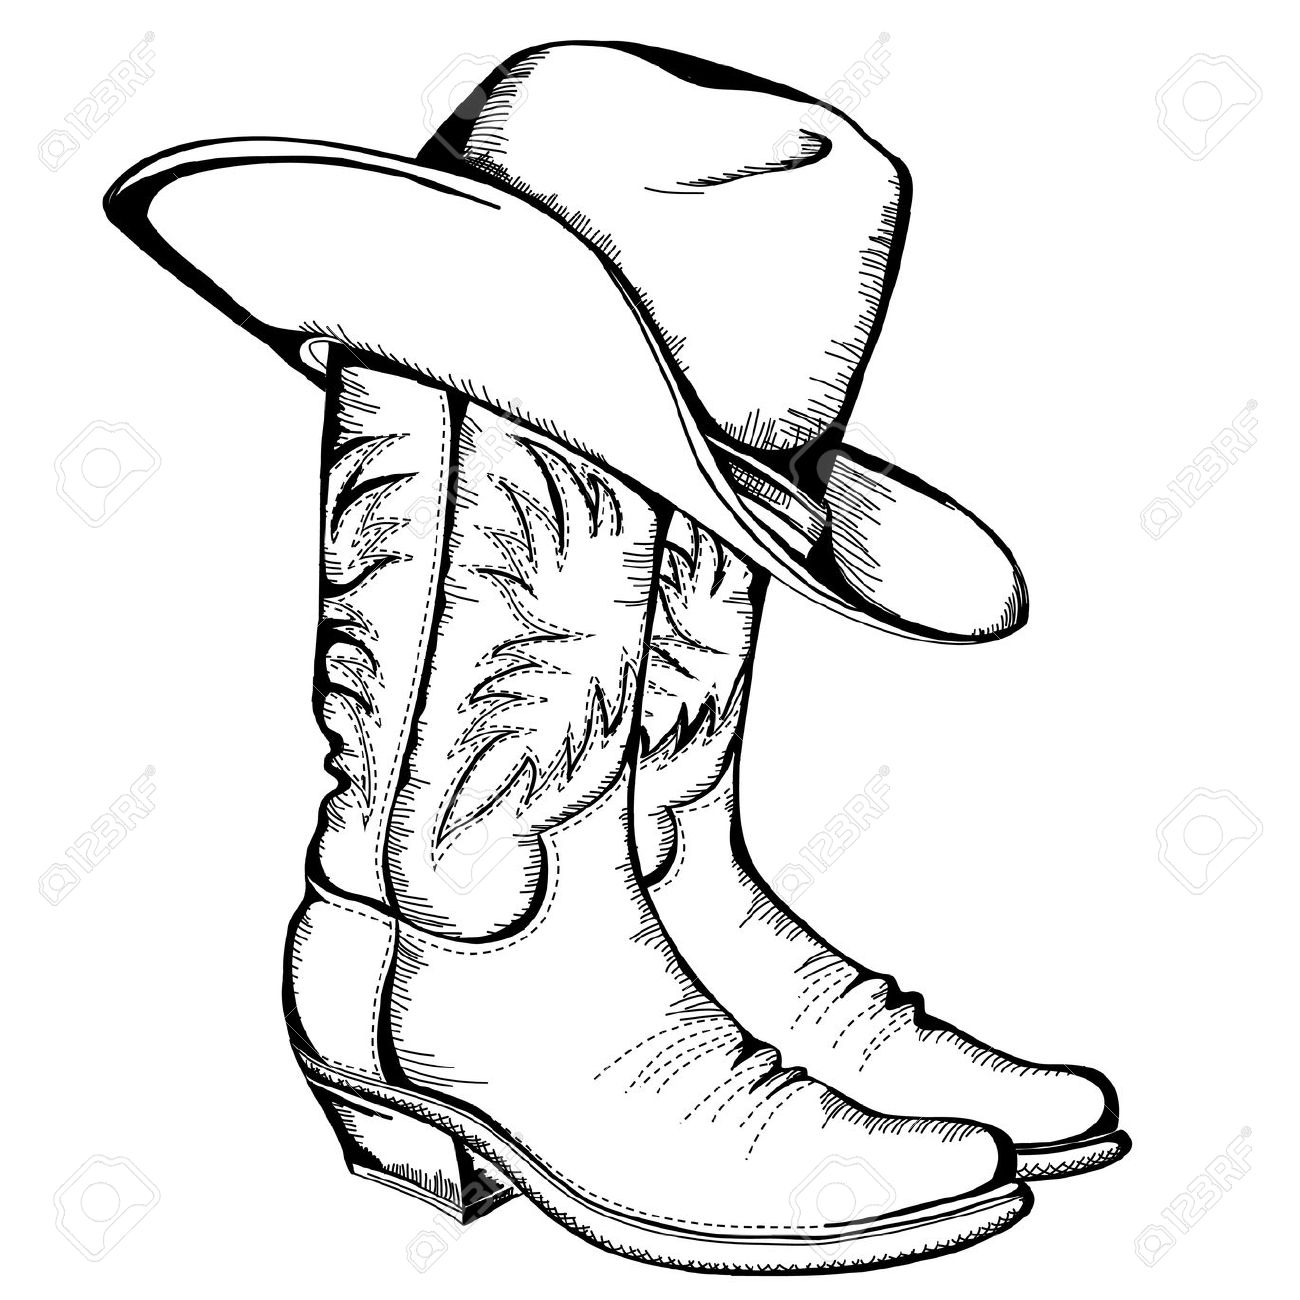 Country Western Coloring Pages At Getdrawings Com Free For